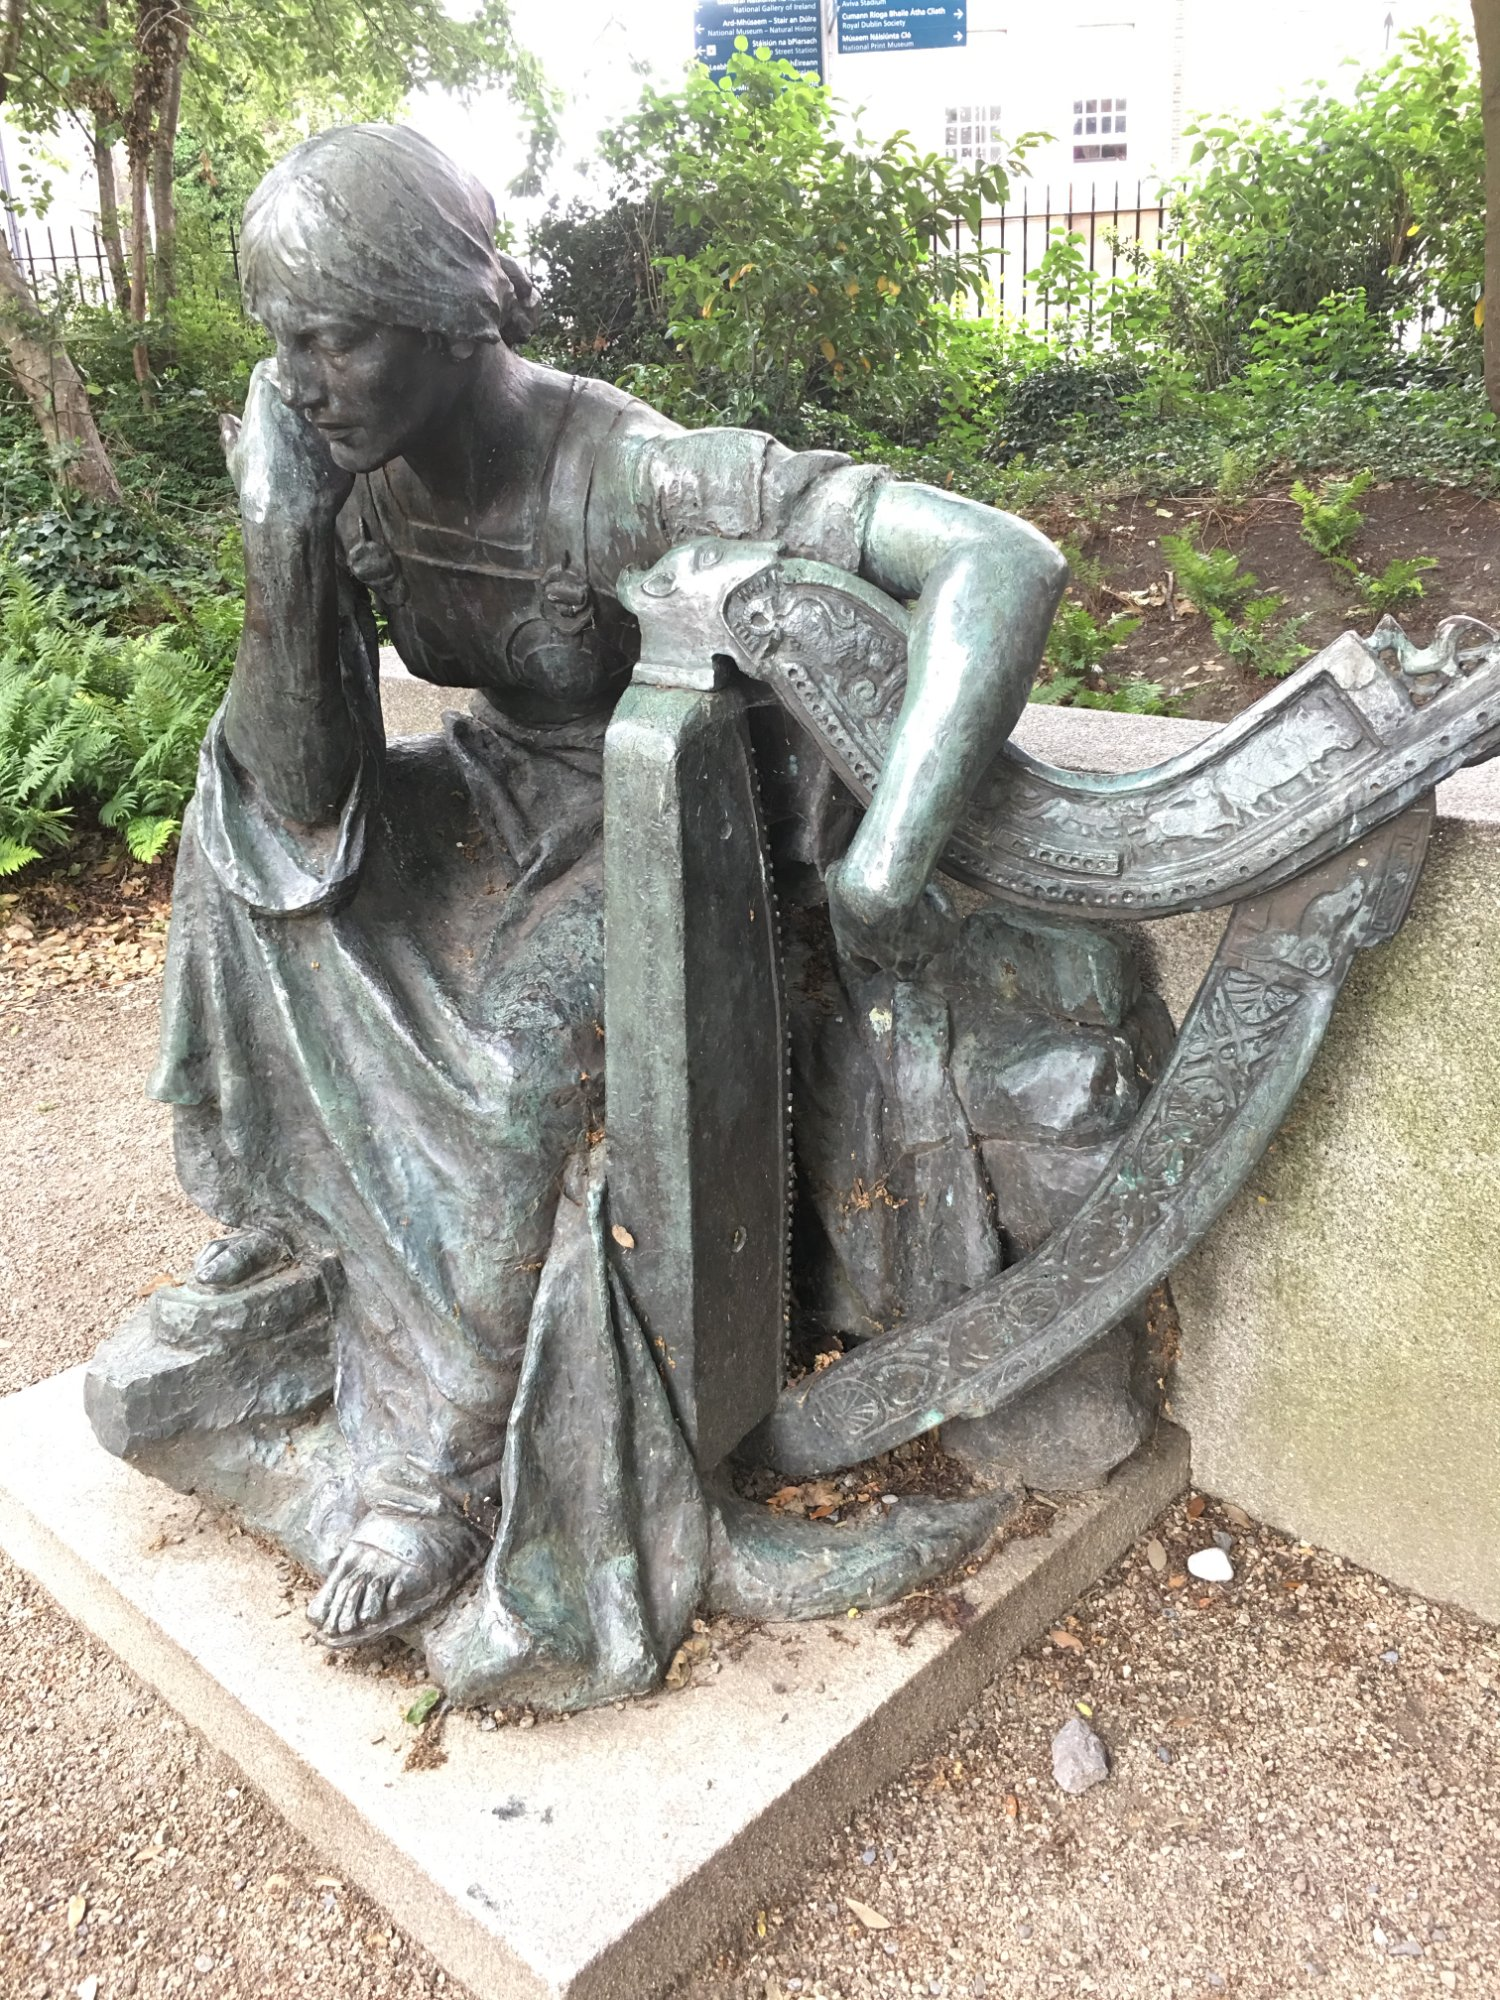 Statue of a disgruntled harpist.